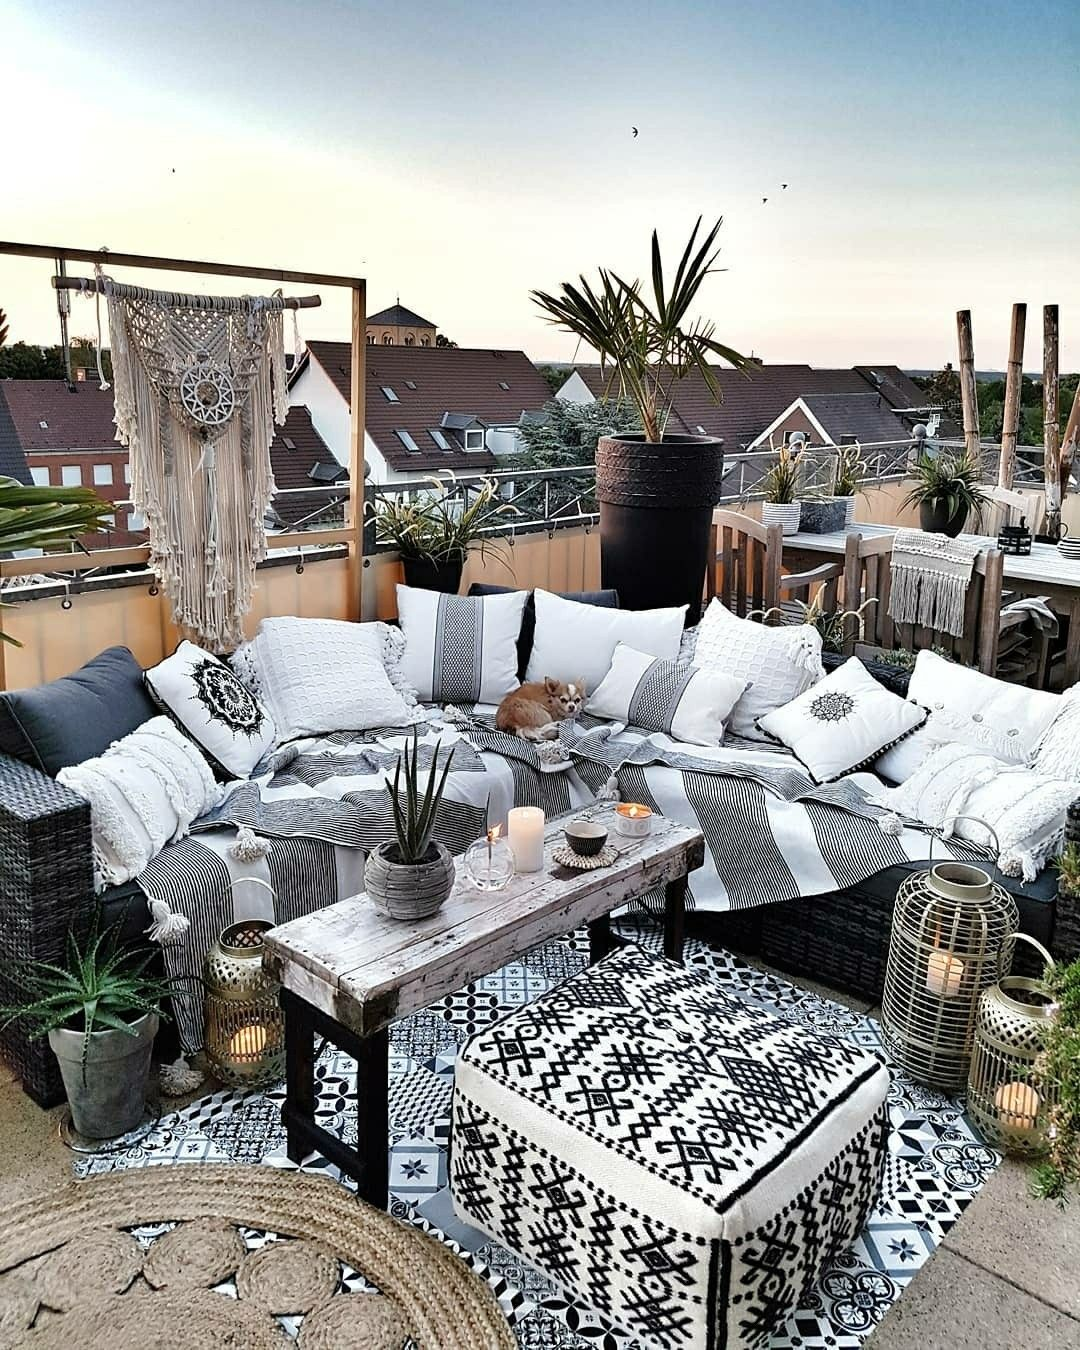 Pin by Amber Hsu on Balcony | Outdoor living decor, Boho ... on Amber Outdoor Living id=39850